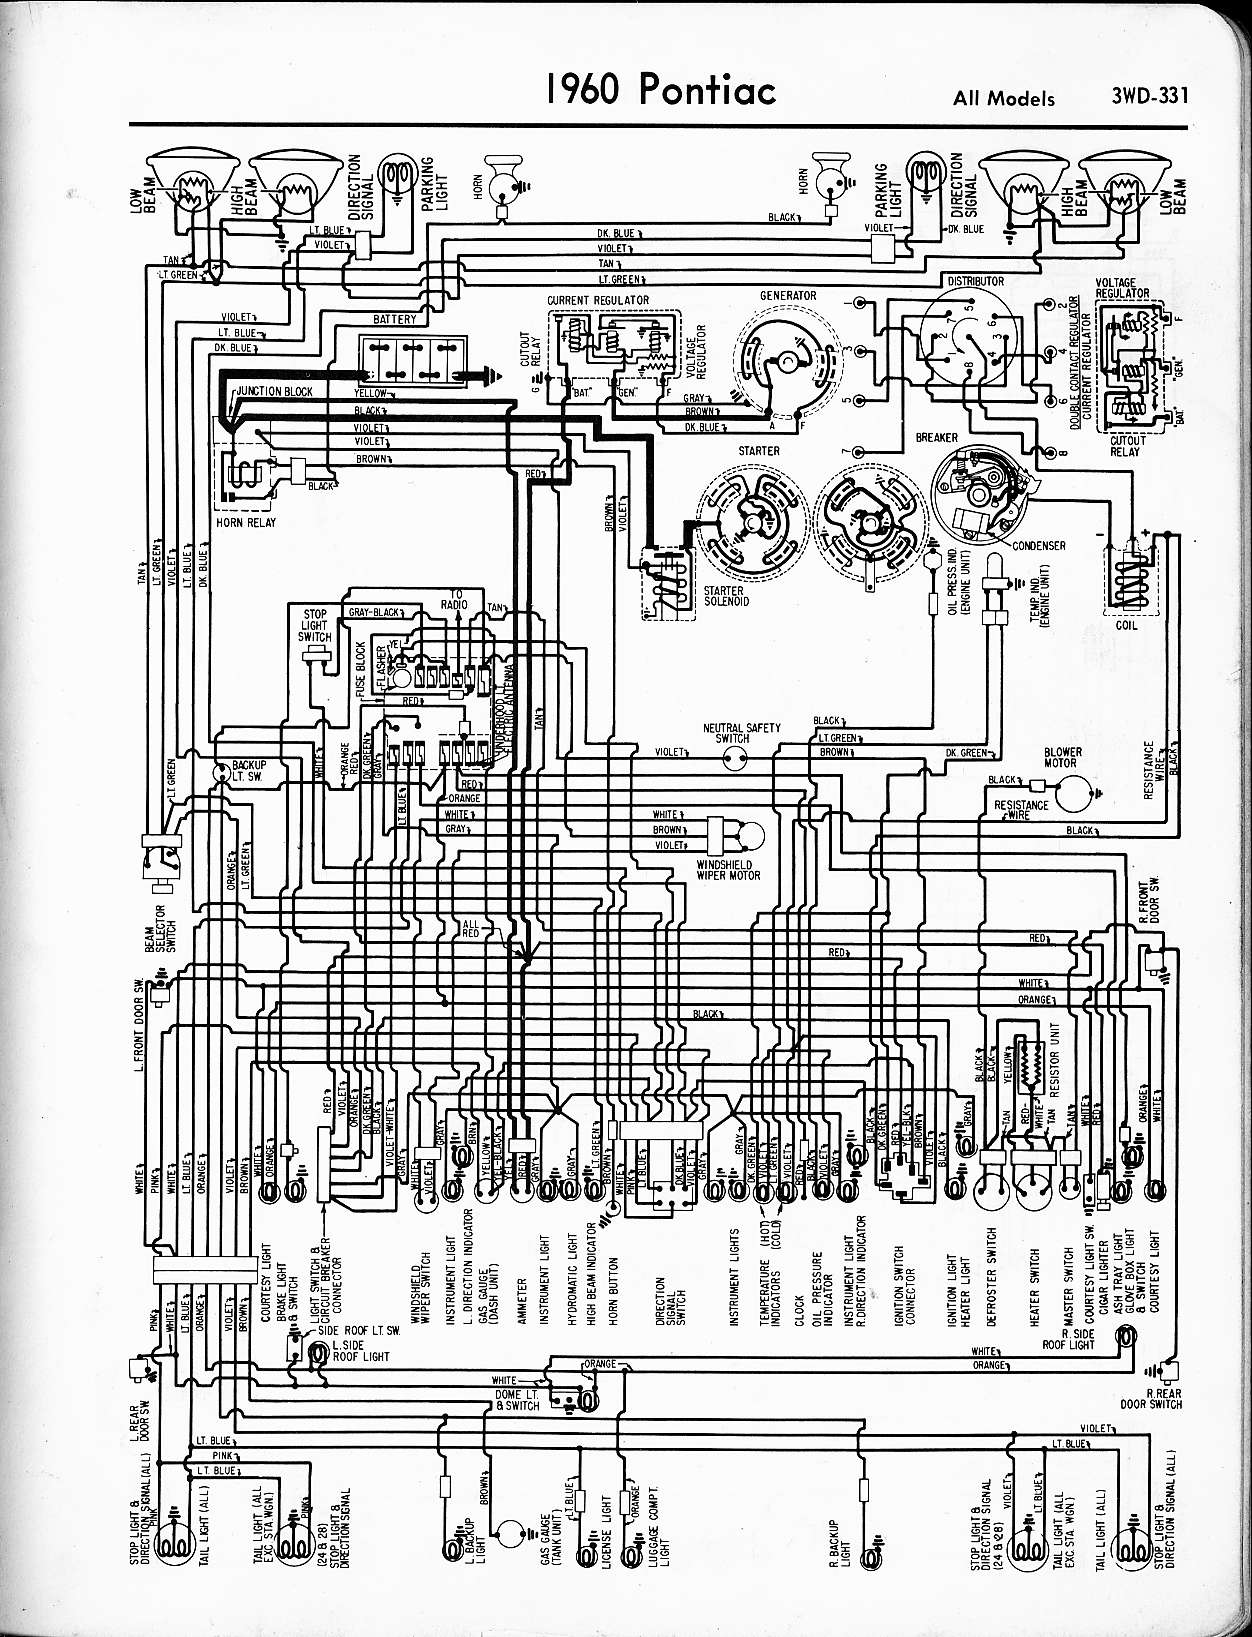 wallace racing wiring diagrams rh wallaceracing com wiring diagram for pontiac g6 wiring diagram for 2001 pontiac sunfire radio